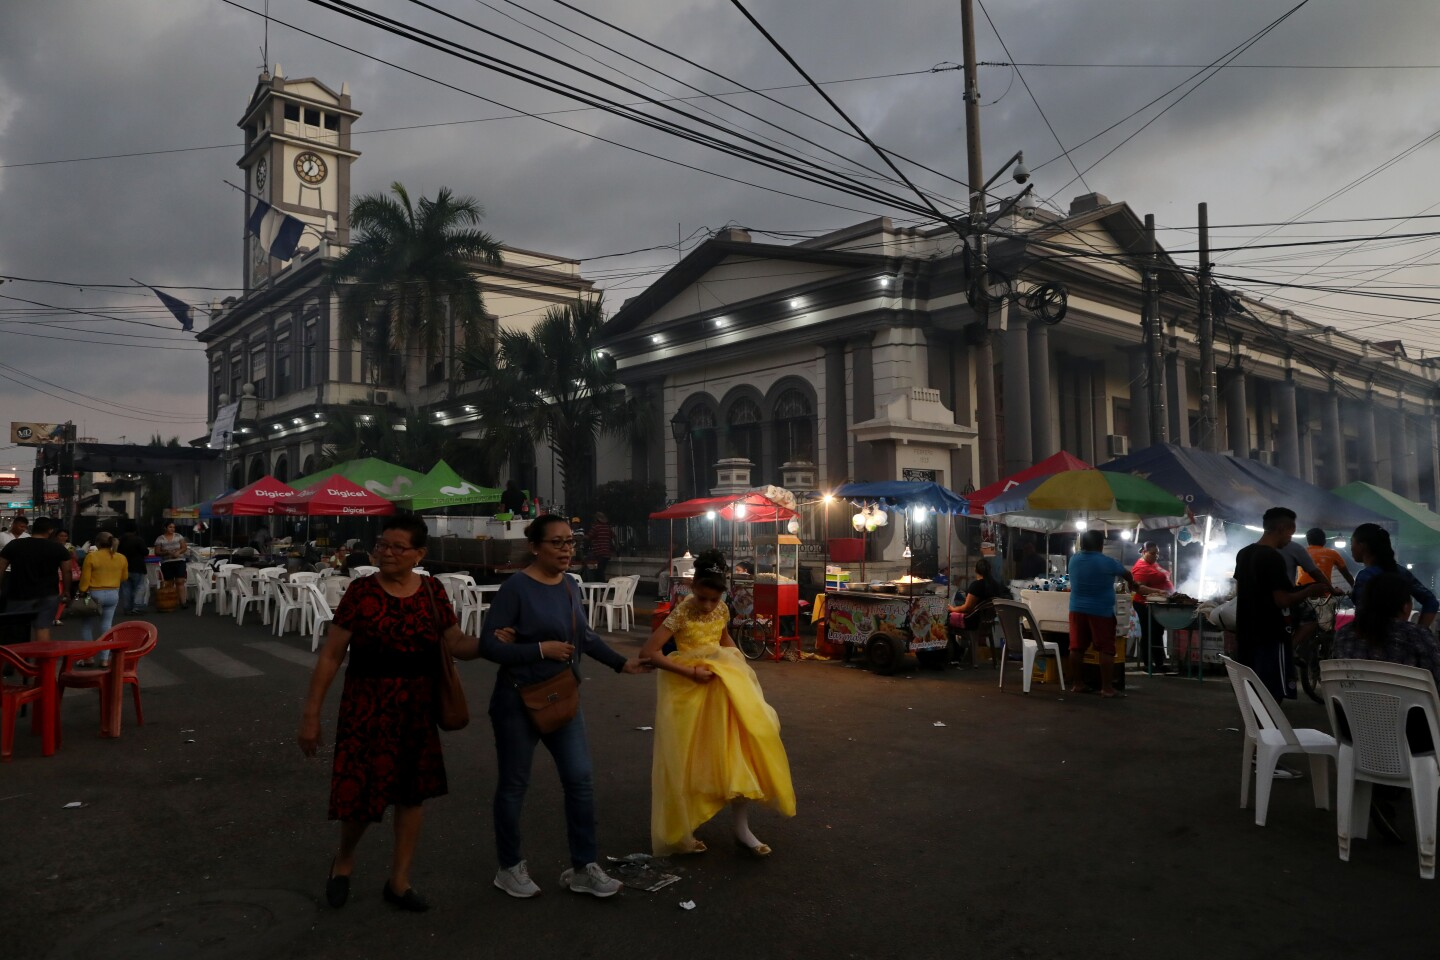 USULUTÁN, USULUTÁN -- FRIDAY, NOVEMBER 22, 2019: Vendors line the street in front of the municipal palace during the Patron Saint Festival in honor of la Virgen Santa Catarina de Alejandría in downtown Usulután, Usulután, on Nov. 22, 2019. Members of the graduating class of 1978 from the Instituto Nacional del Usulután attended their 41st class reunion. When the country plunged into a civil war in October 1979, many of them left for the United States and other parts of the world. Now, they're coming back together for a high school reunion, the second one. (Gary Coronado / Los Angeles Times)